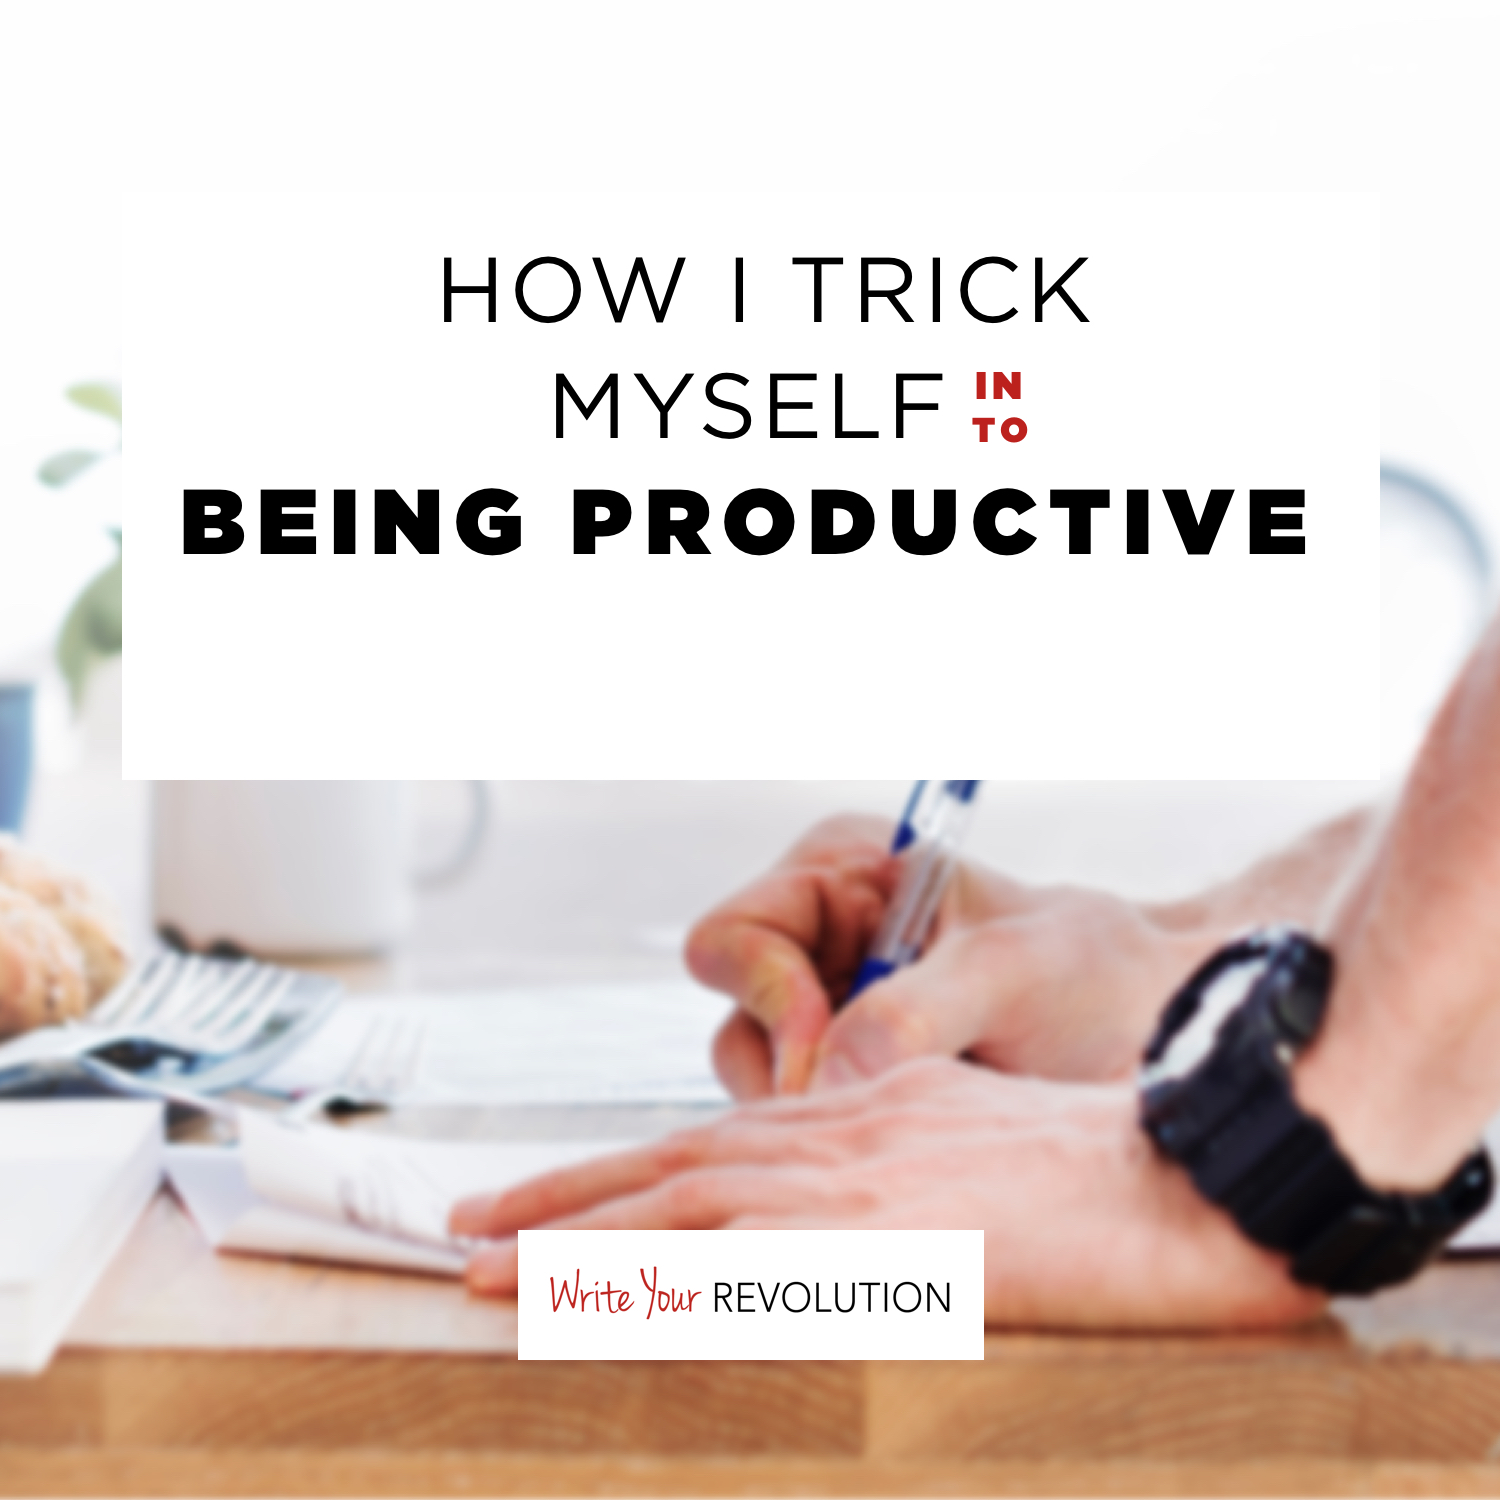 How I Trick Myself into Being Productive